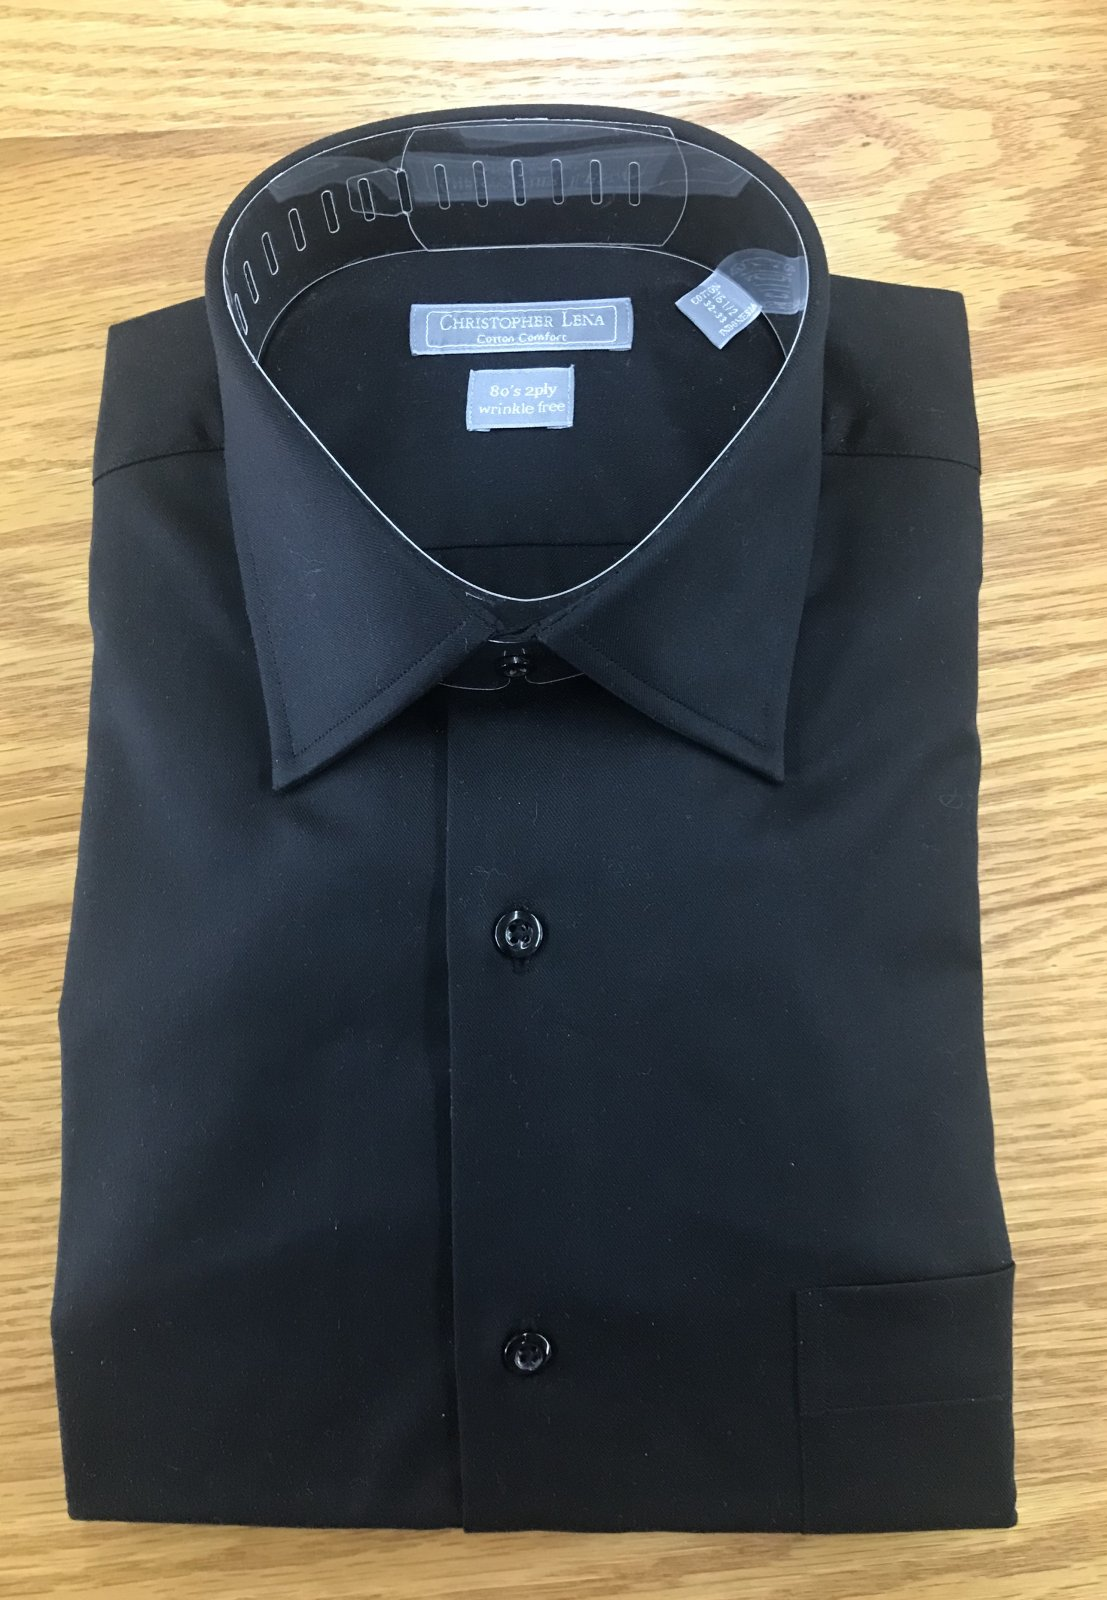 Christopher Lena Blk Dress Shirt